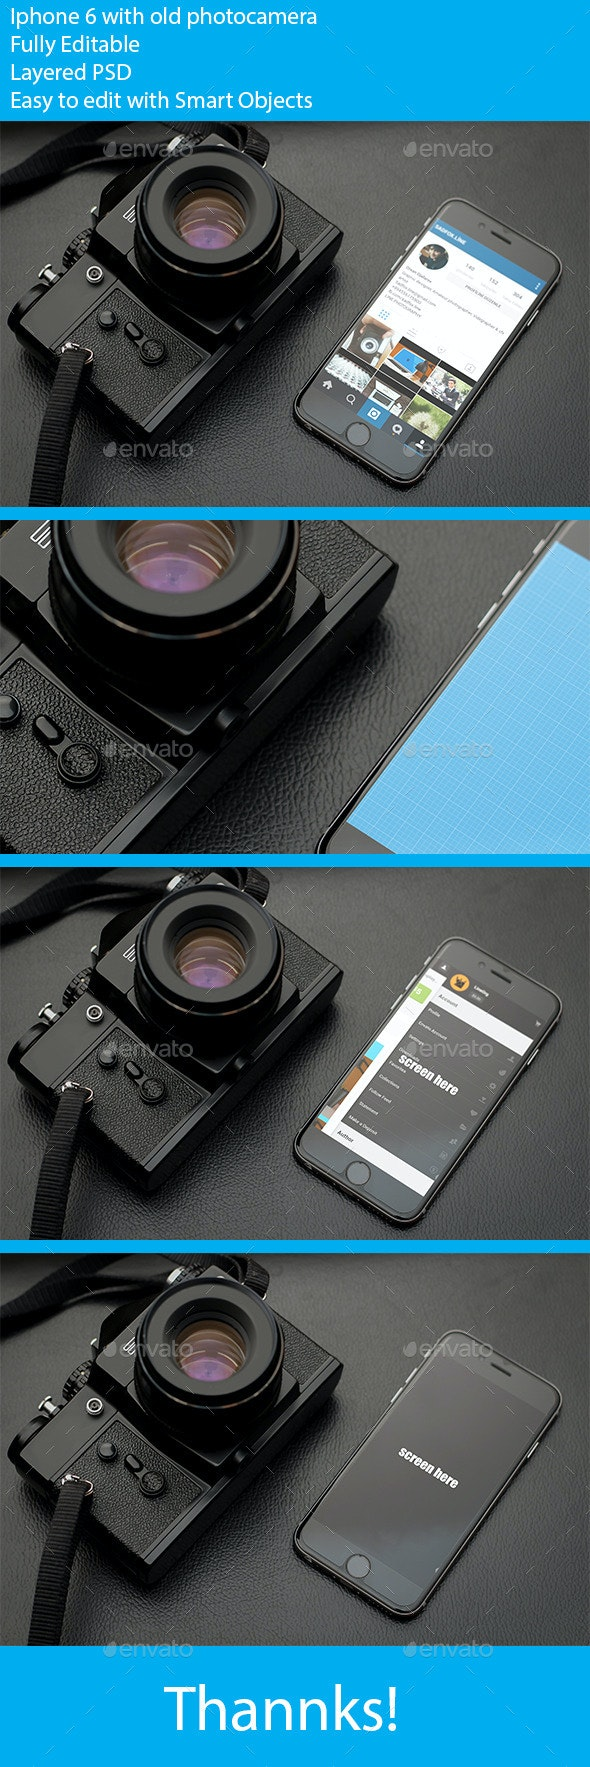 Photorealistic phone 6 mockup with old photocamera - Mobile Displays